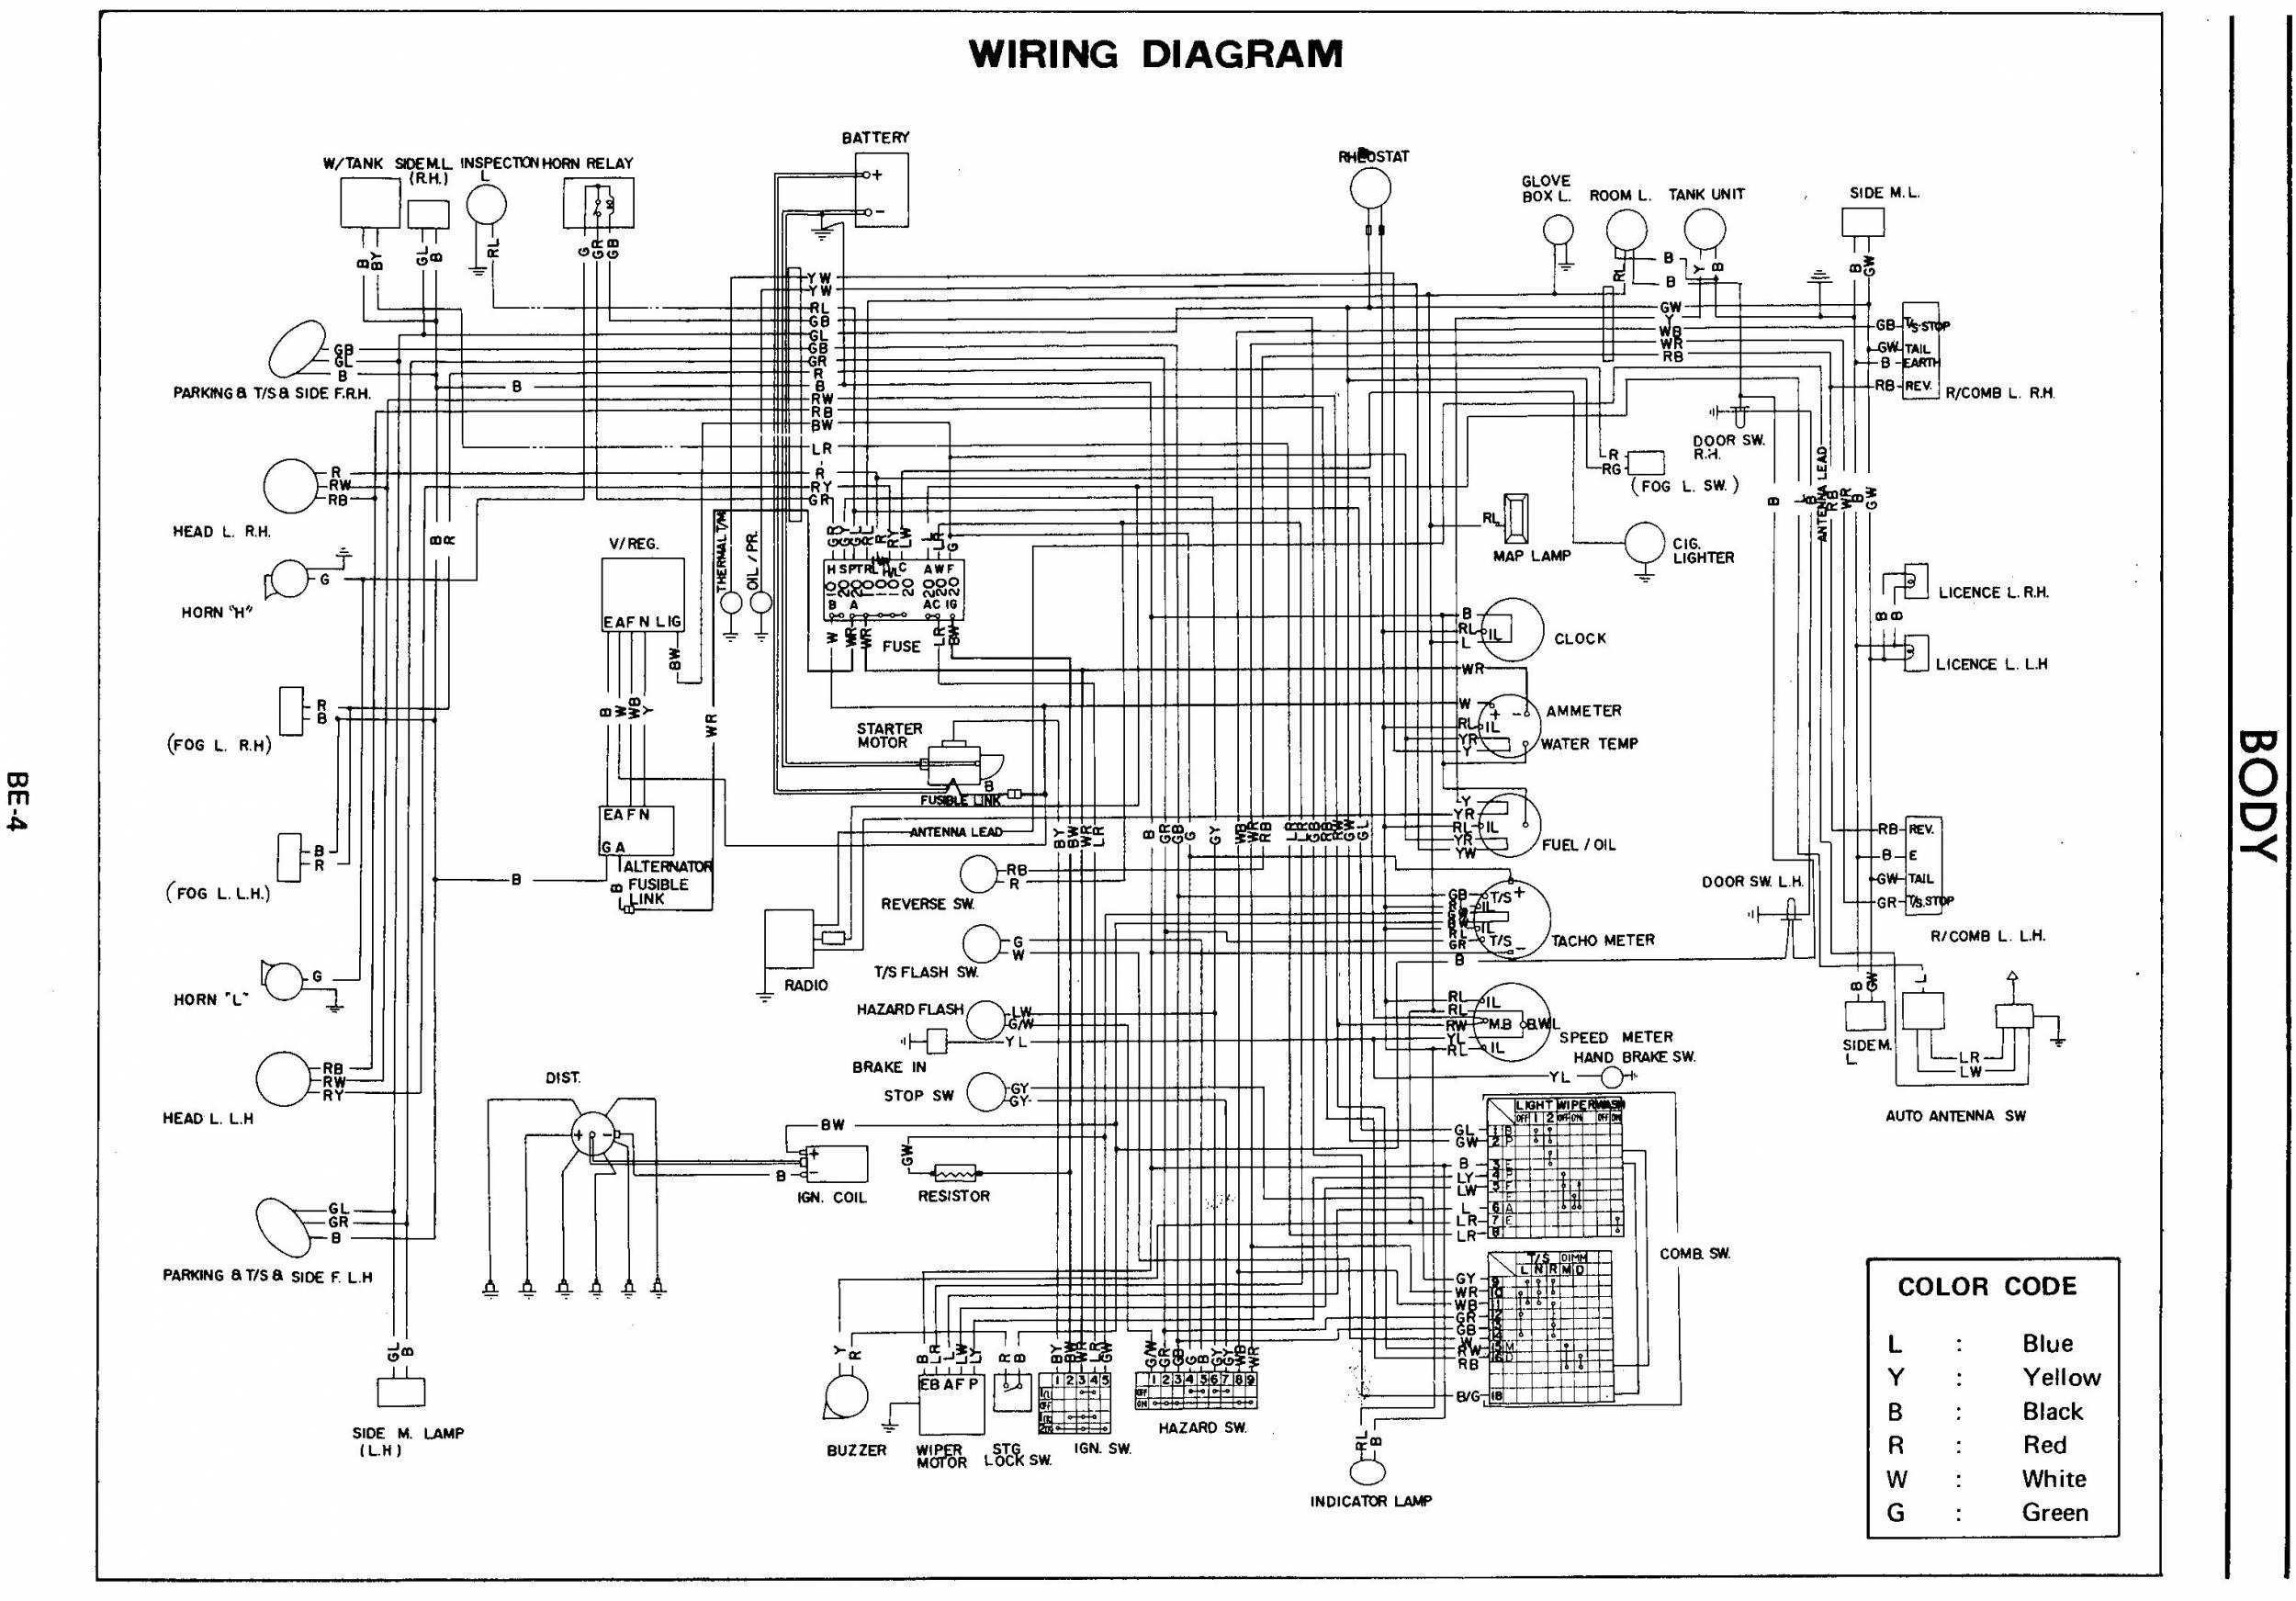 Wiring Diagram For Mercedes Benz W124 - Wiring Diagram Srconds on